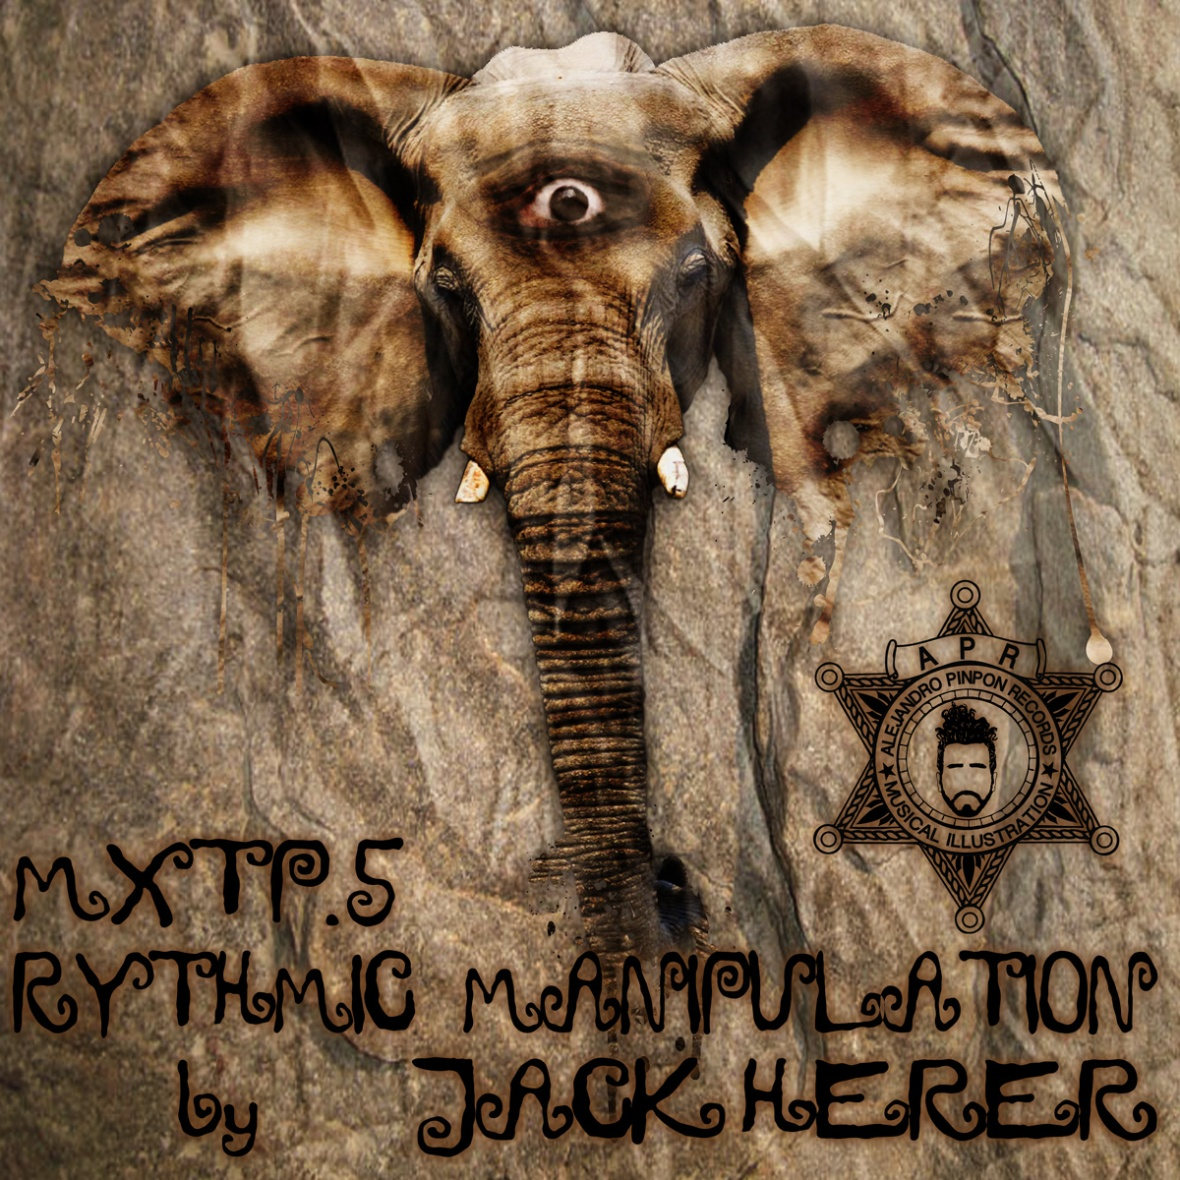 mxtp.5-jack-herer-artwork-by-alejandro-pinpon